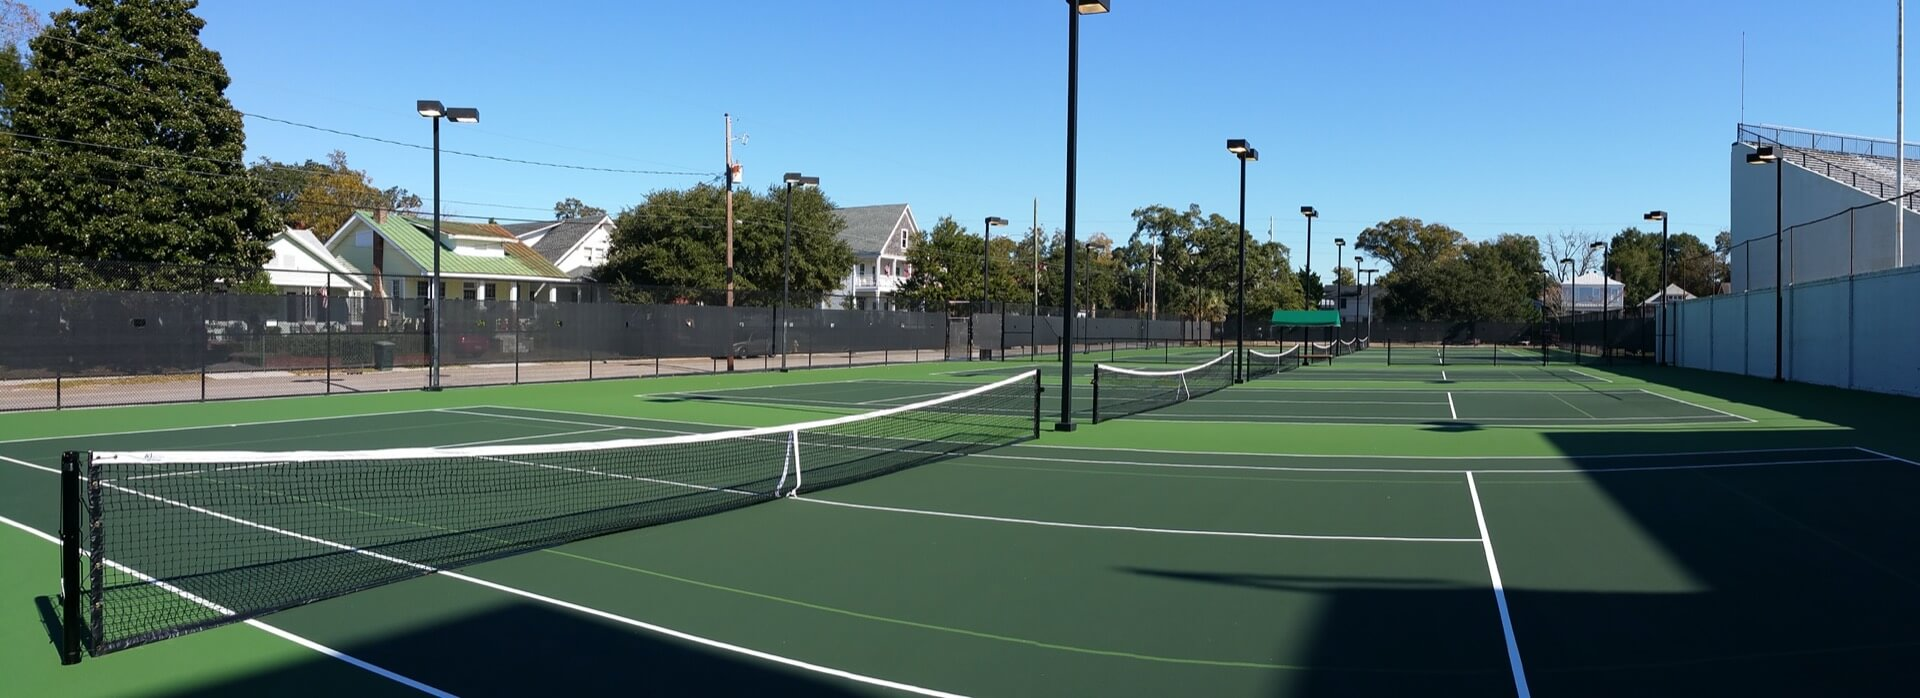 Jack Adams Tennis Facility